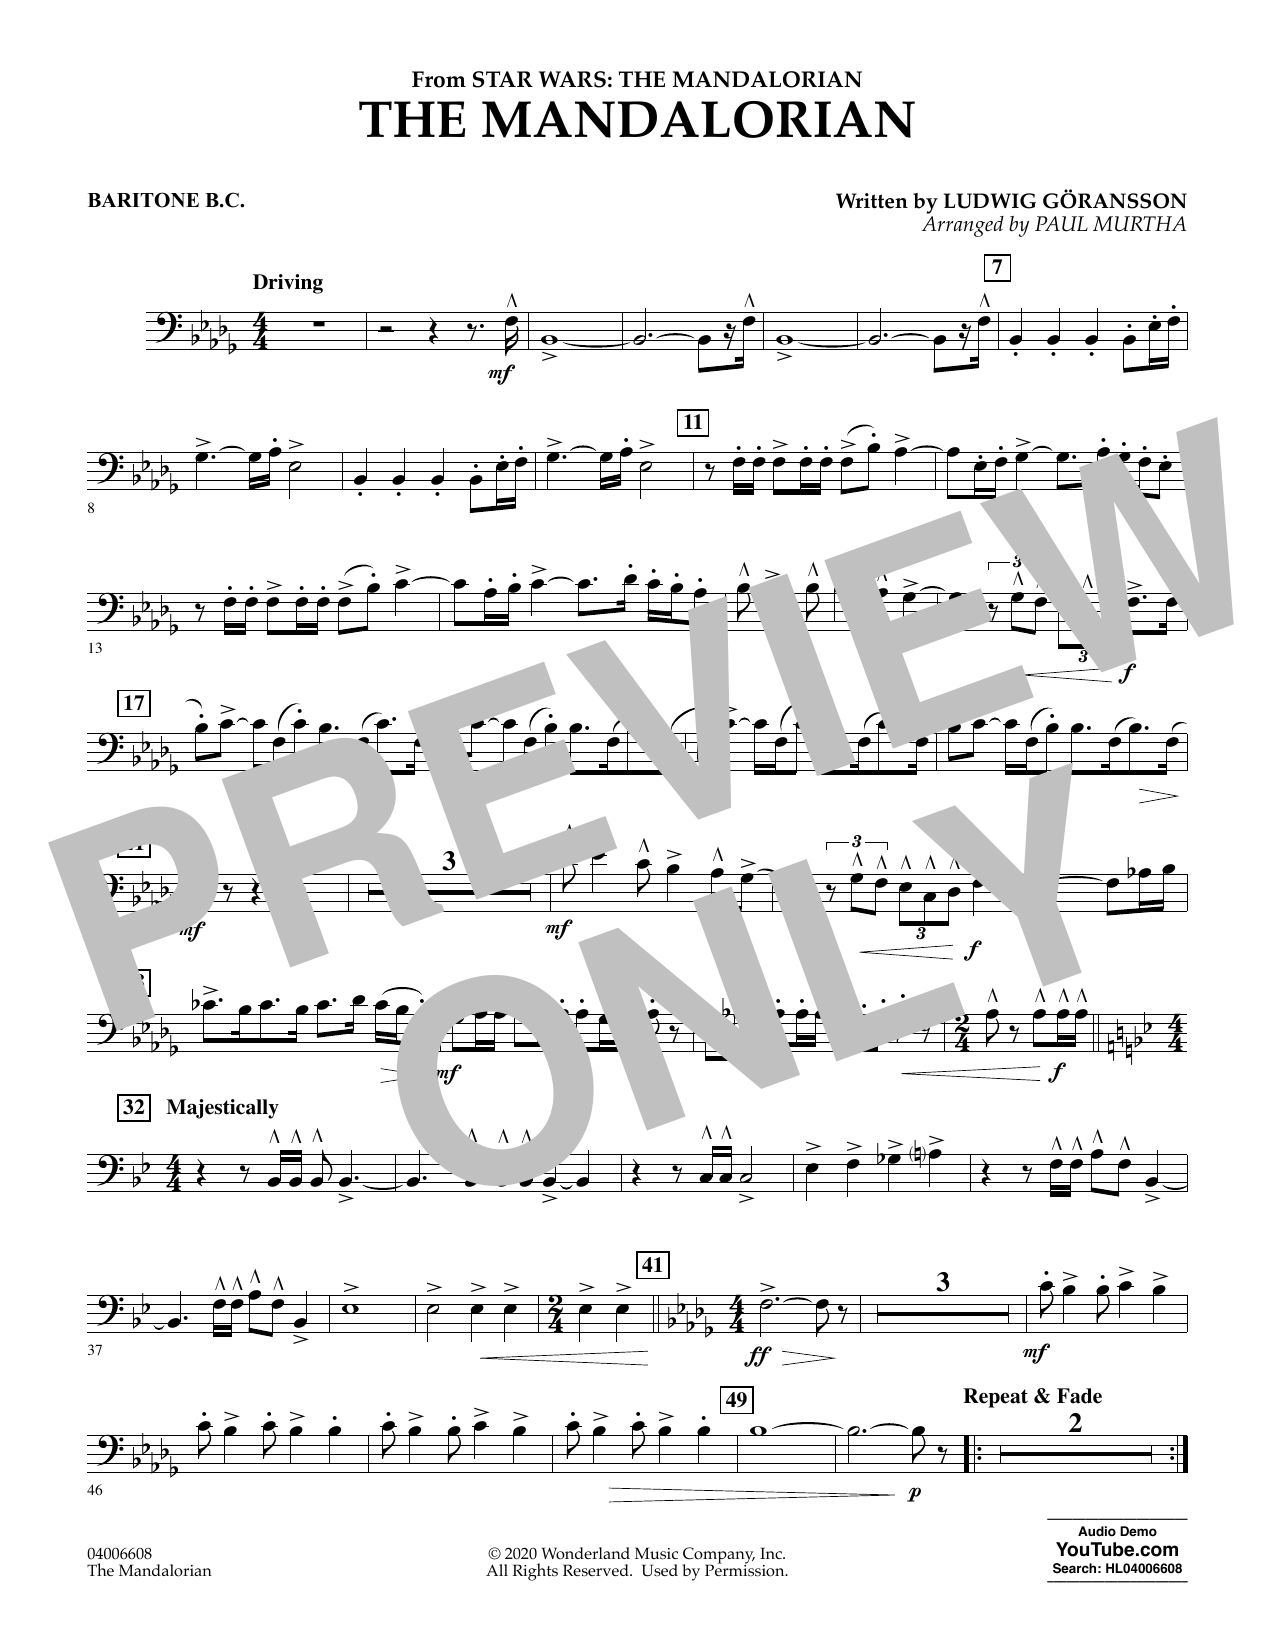 Ludwig Goransson The Mandalorian (from Star Wars: The Mandalorian) (arr. Paul Murtha) - Baritone B.C. sheet music notes and chords. Download Printable PDF.